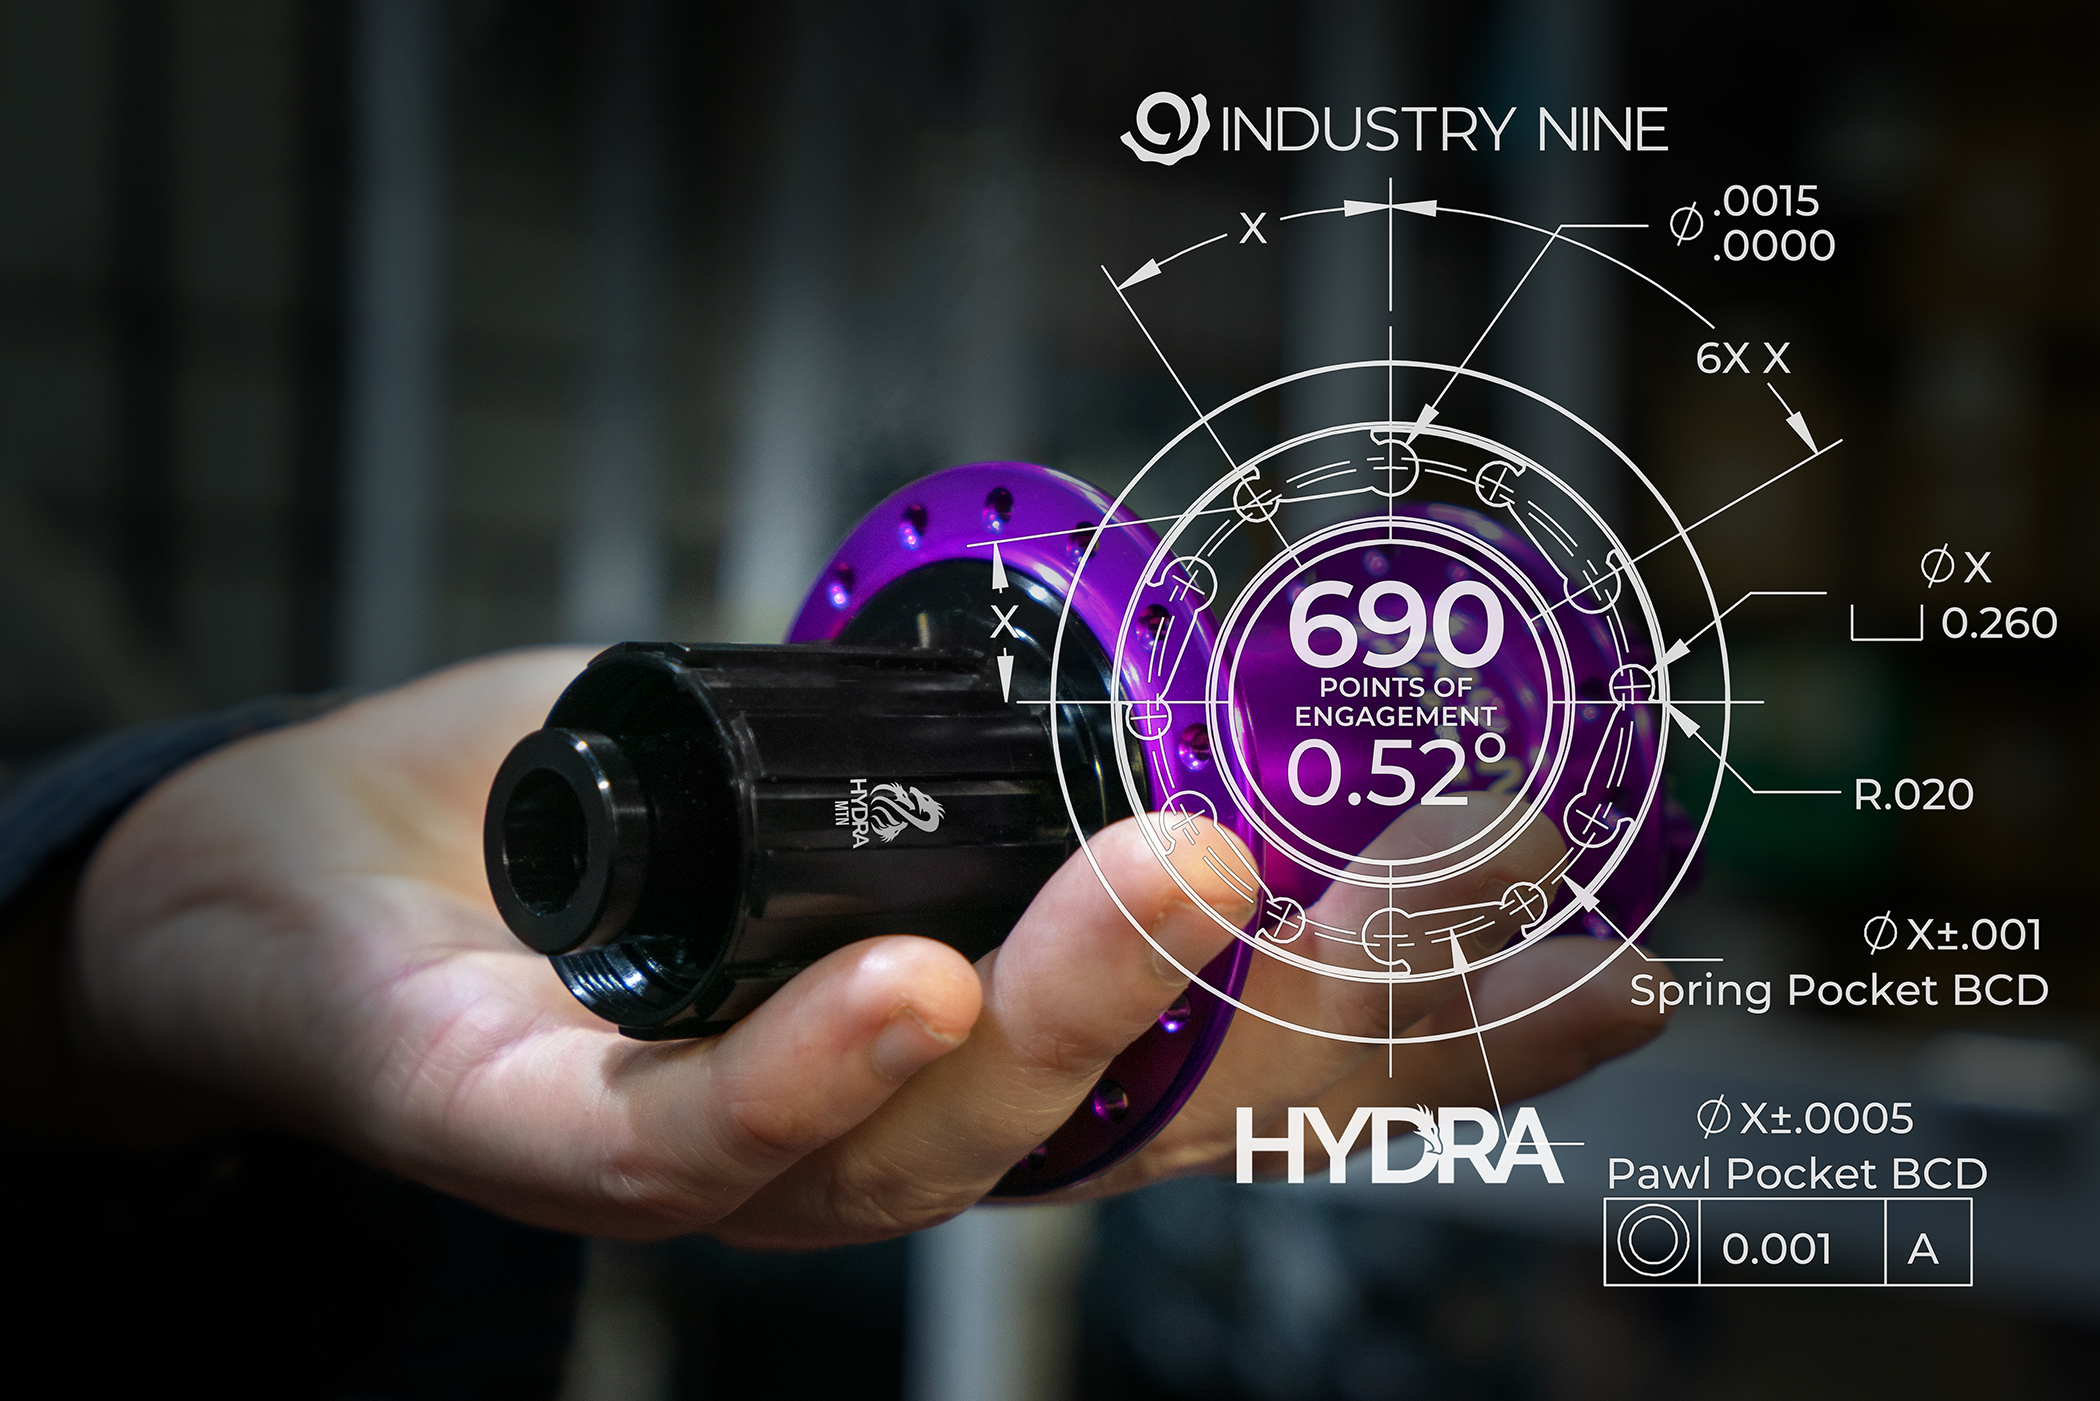 HYDRA_Hub_in_hand-purple_CAD_POE[1].jpg